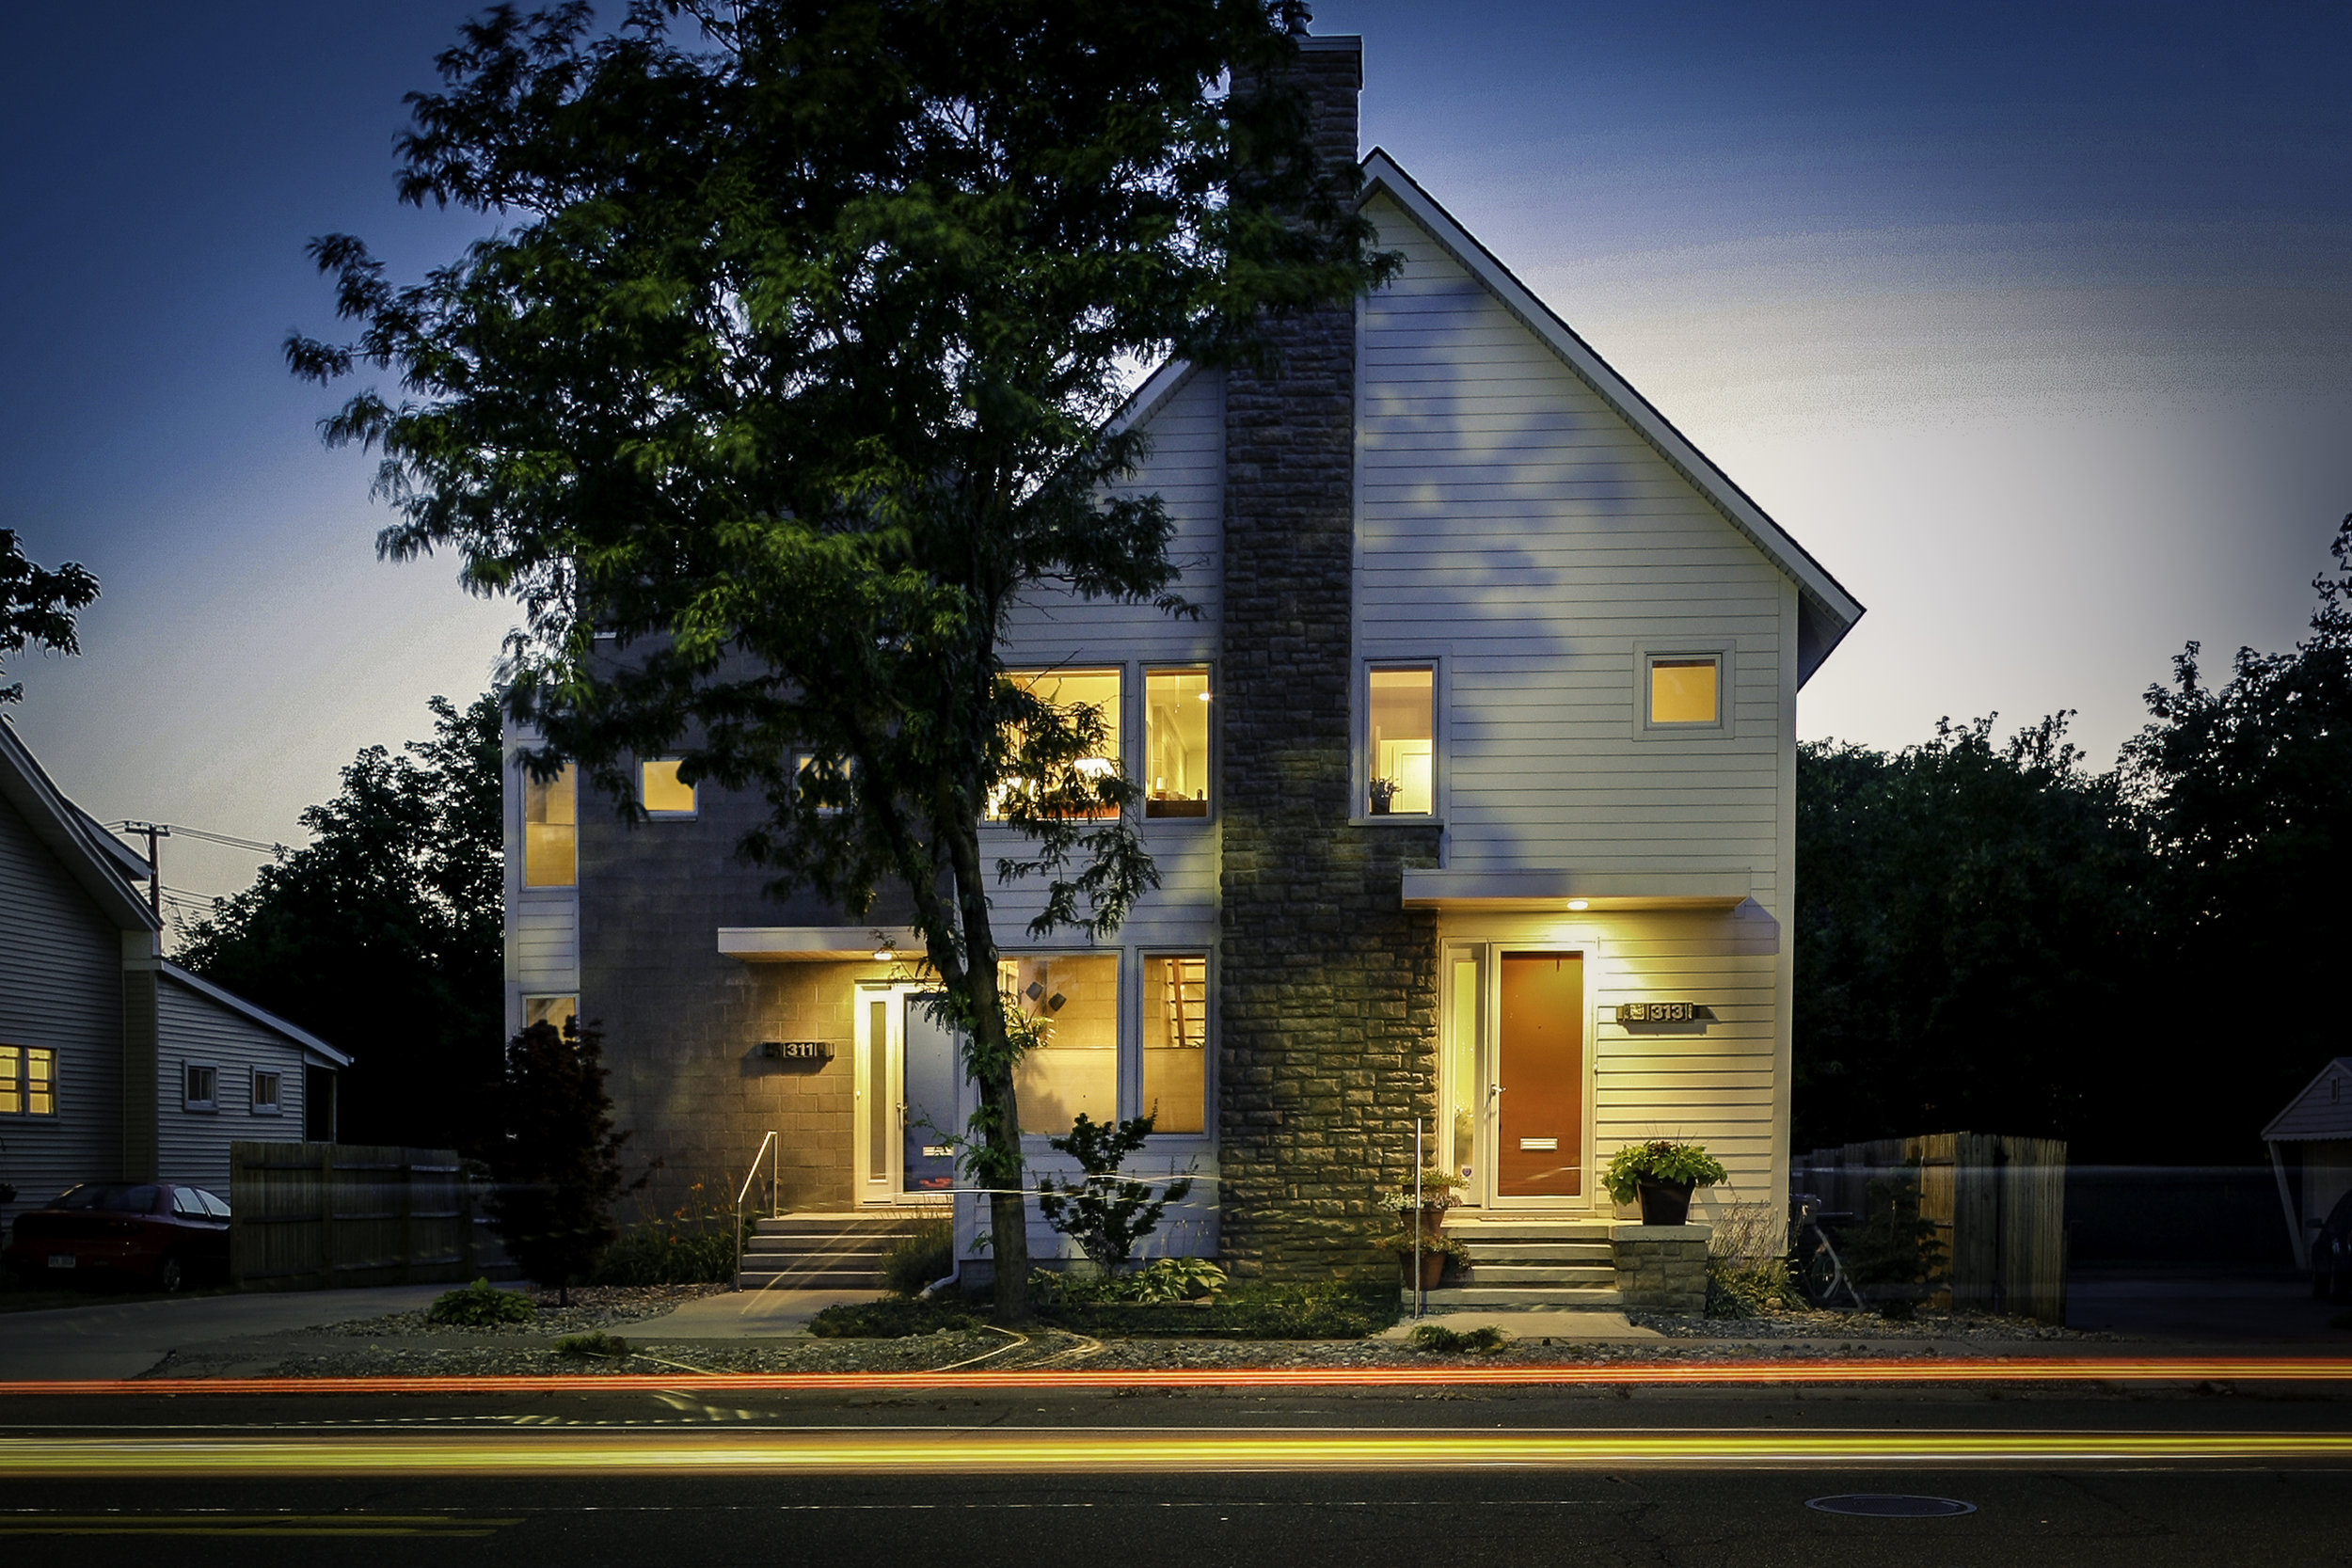 311 STREET VIEW - OOMBRA ARCHITECTS